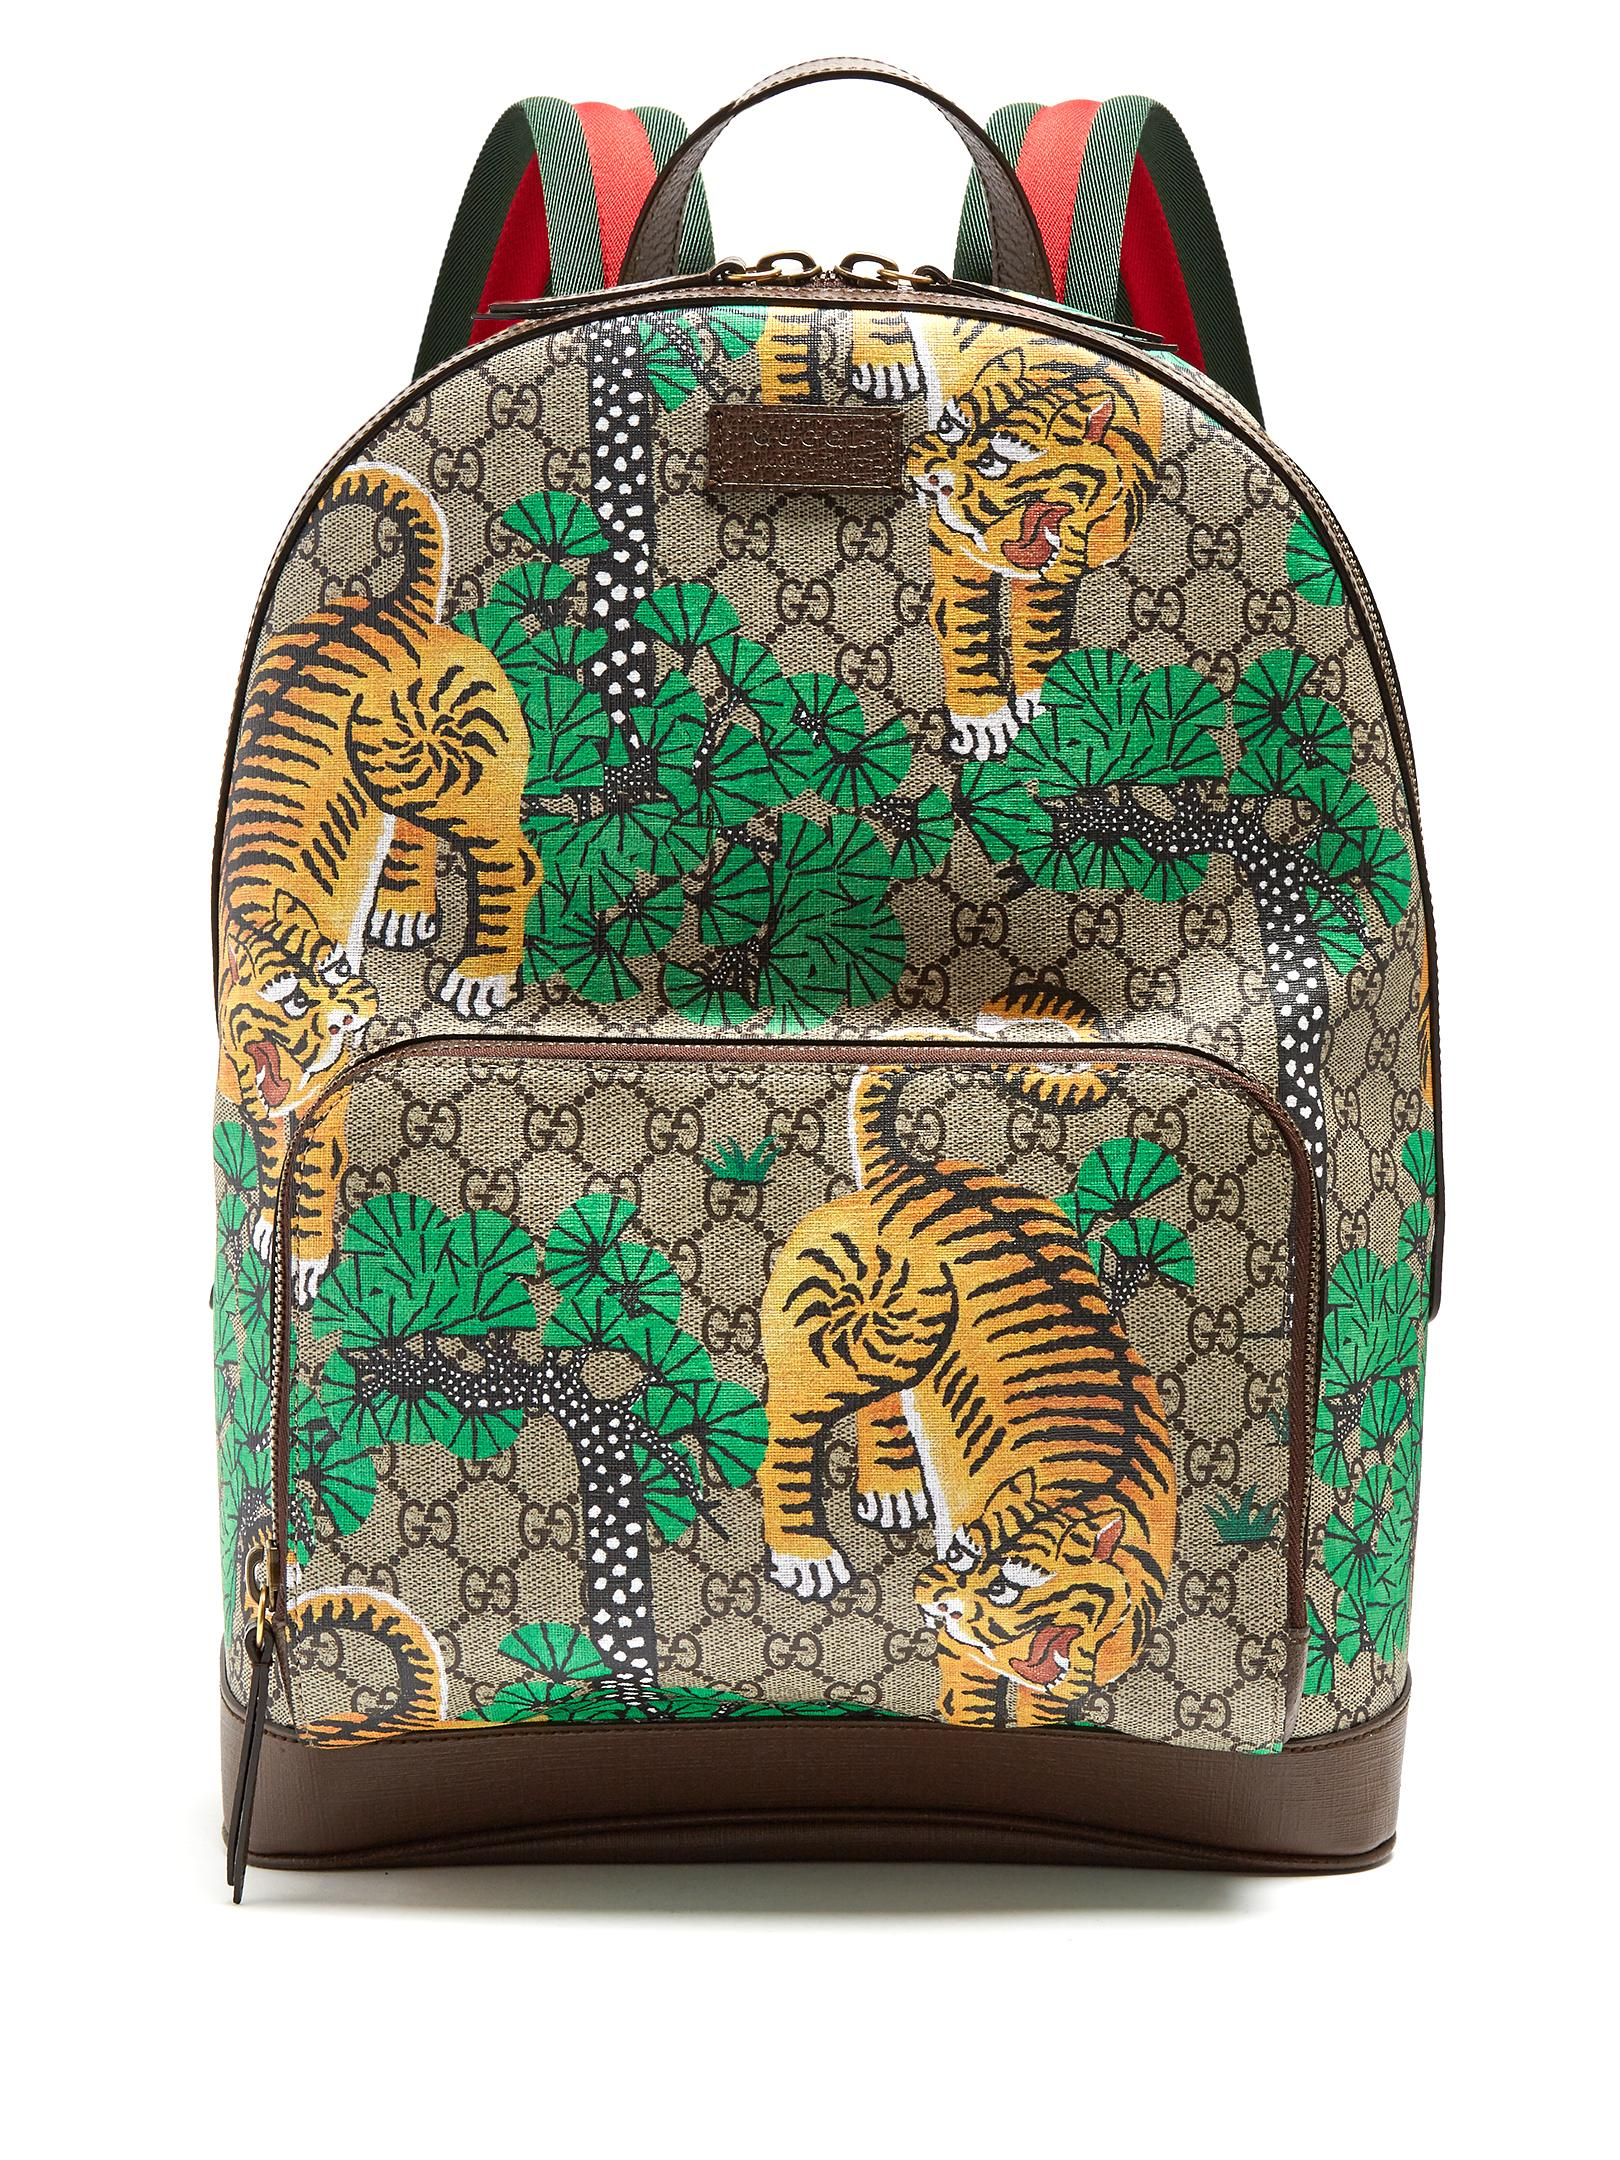 Gucci Bengal Gg Supreme Canvas And Leather Backpack For